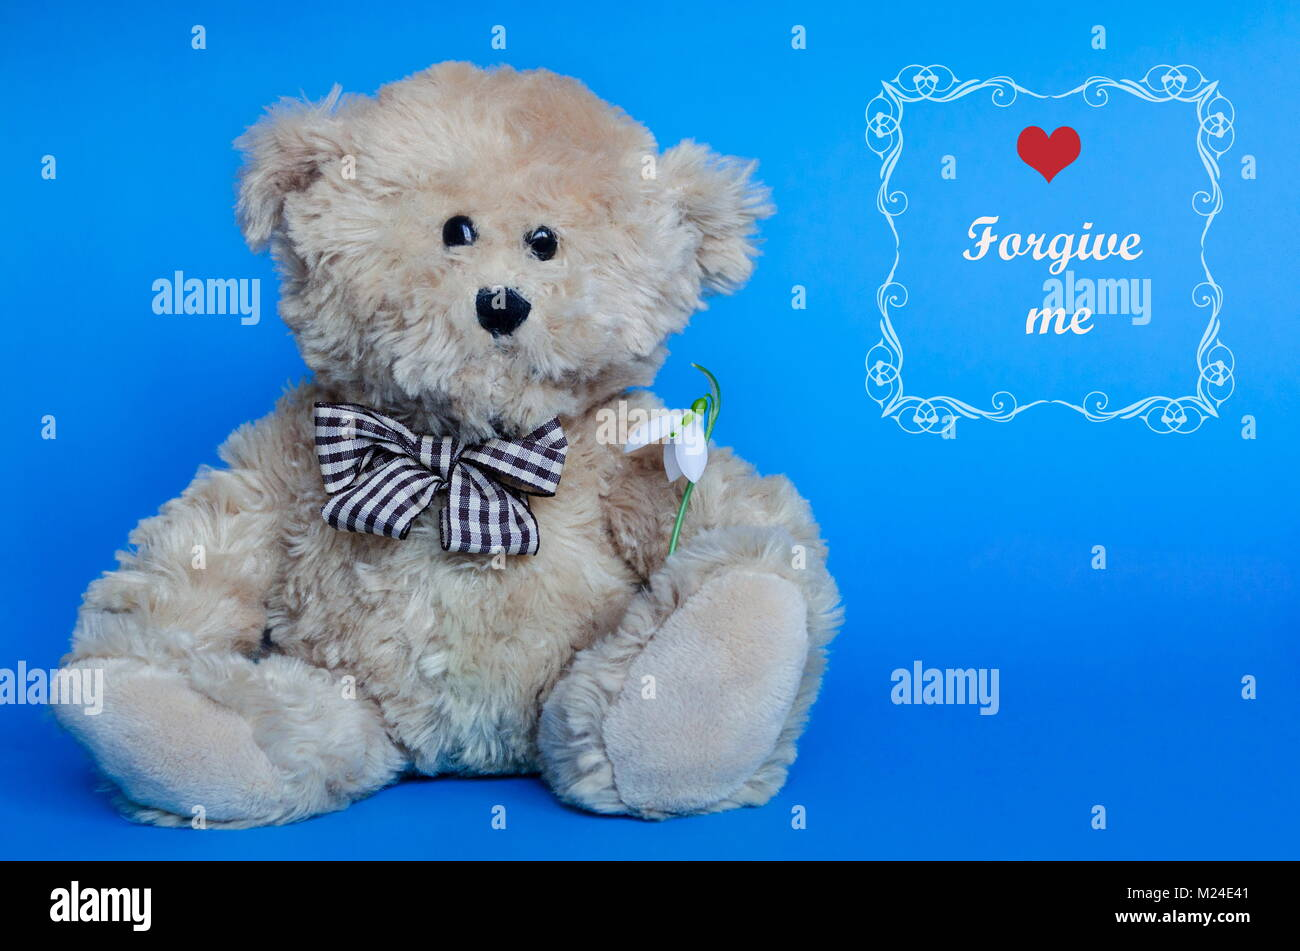 Cute teddy bear and red hearts for Valentine's Day, with text: forgive me - Stock Image